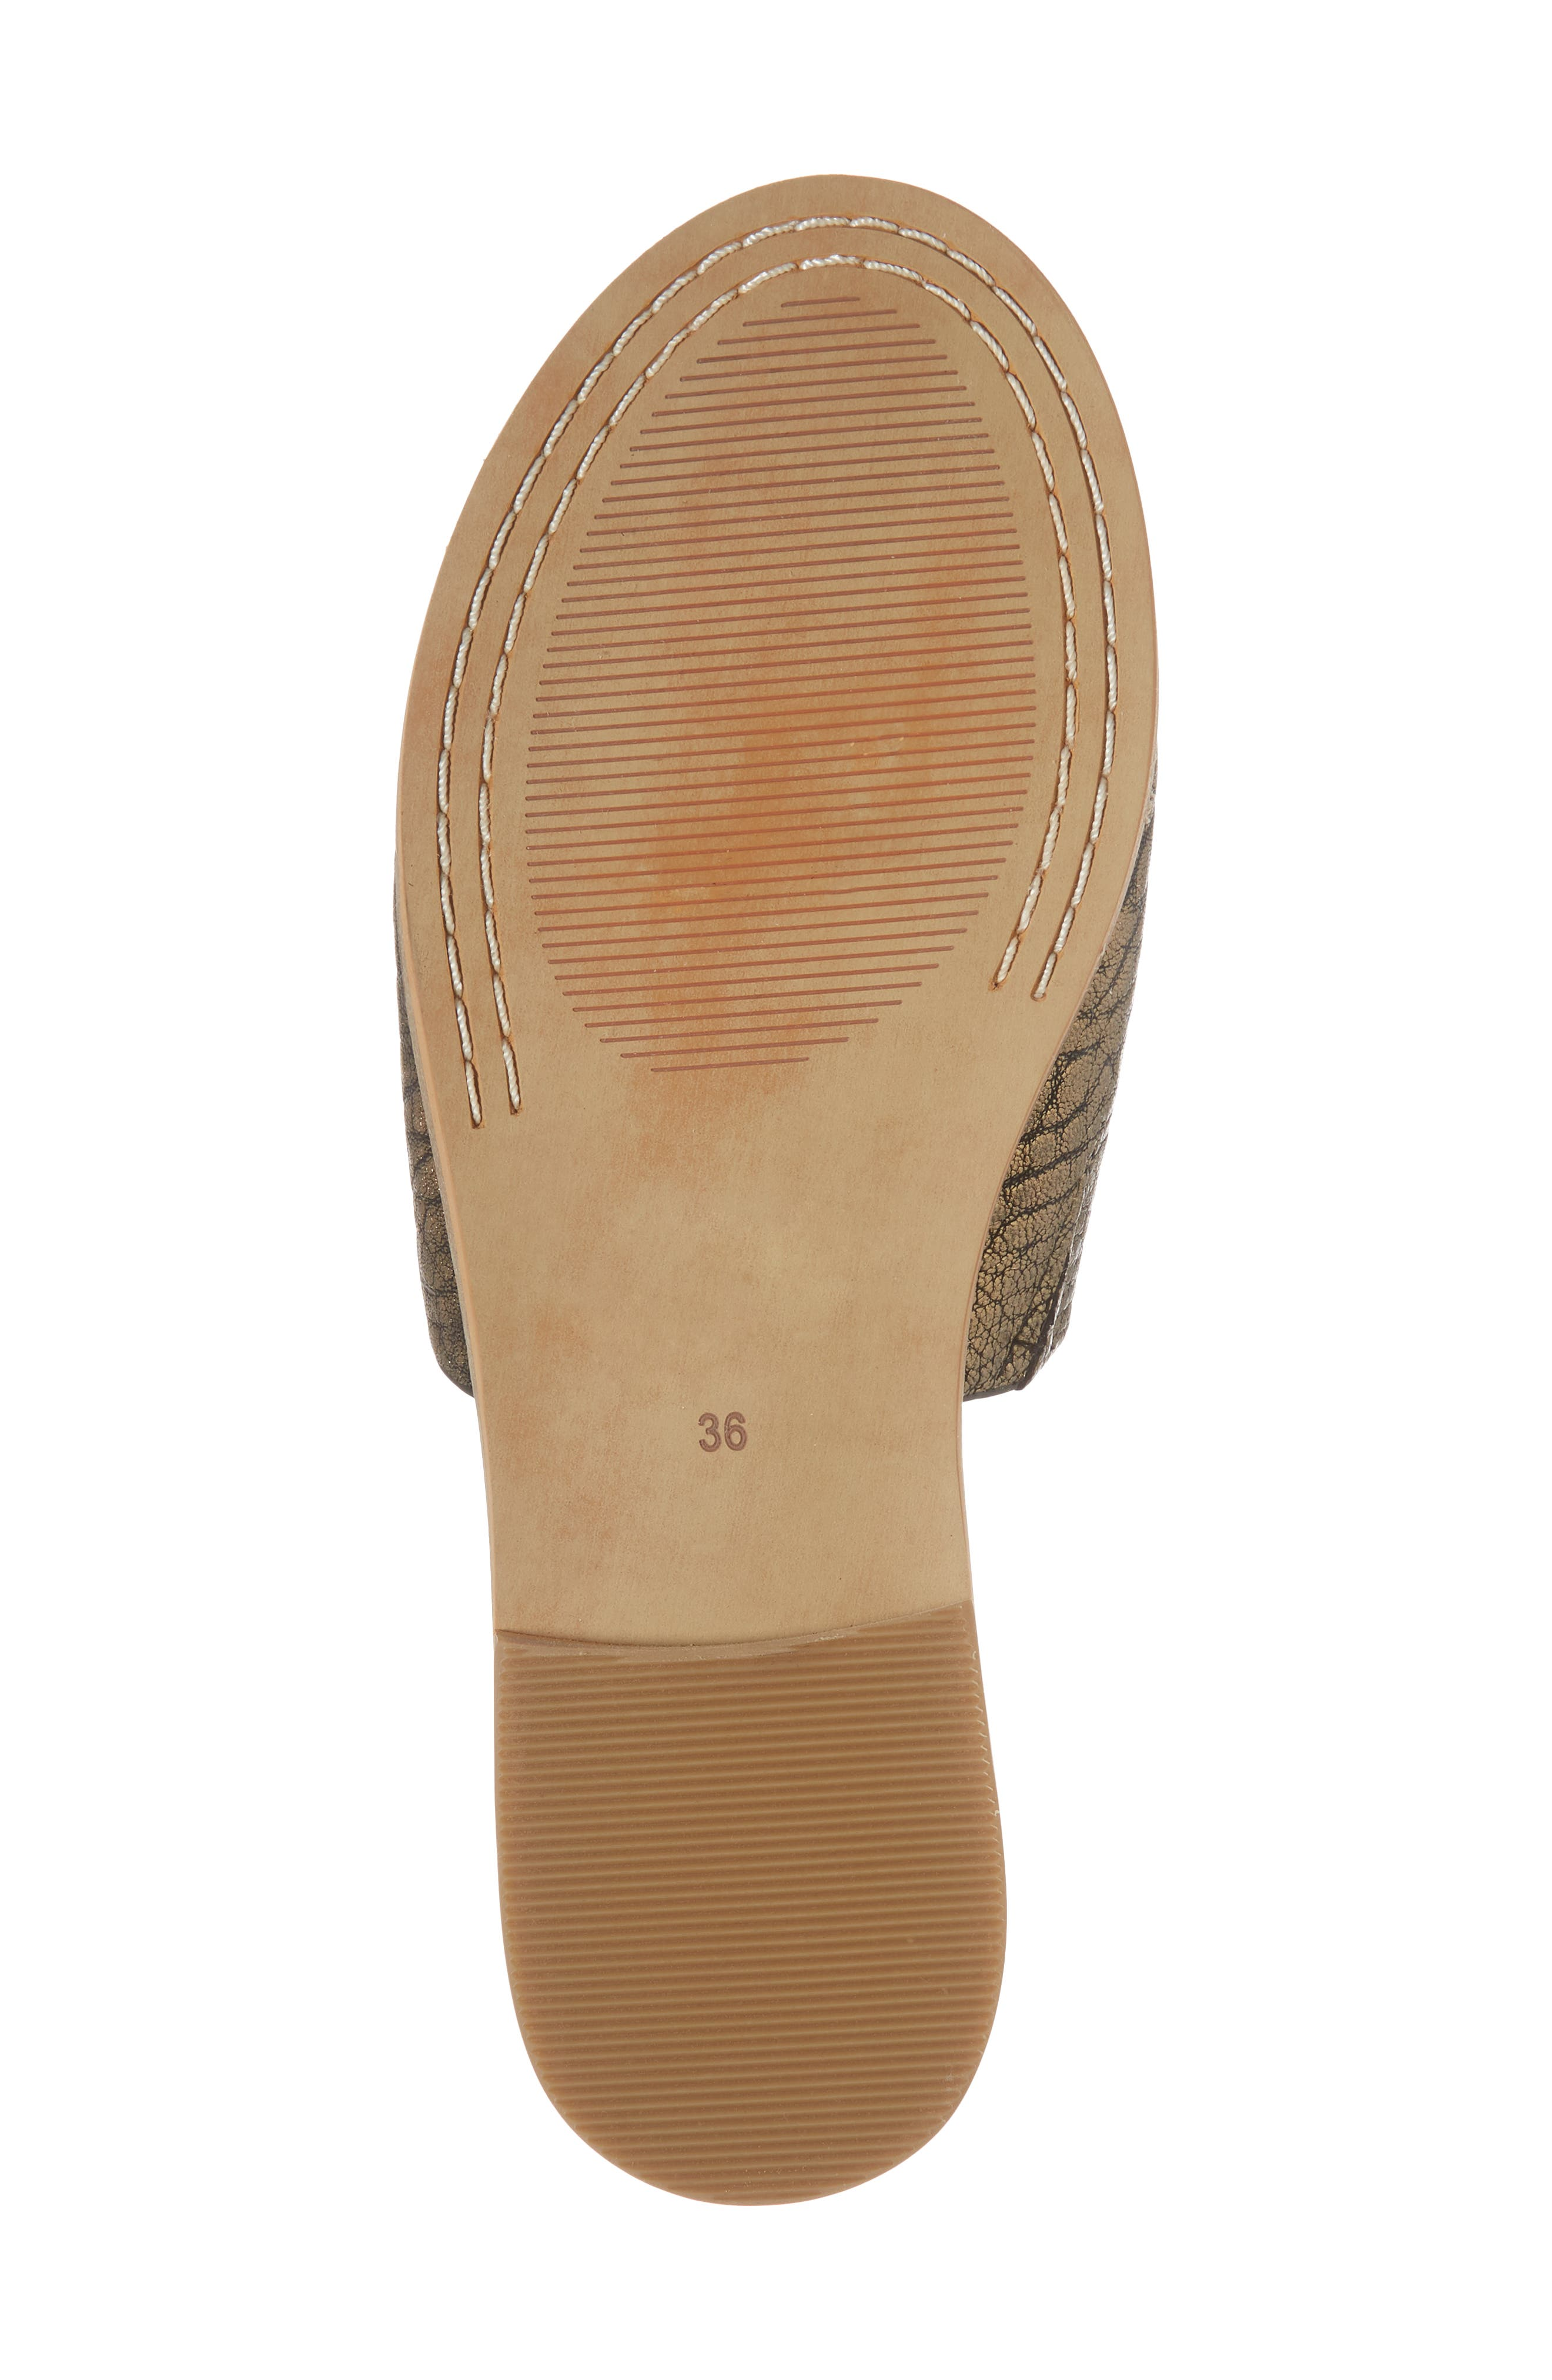 Therapy Slide Sandal,                             Alternate thumbnail 6, color,                             Gold Leather